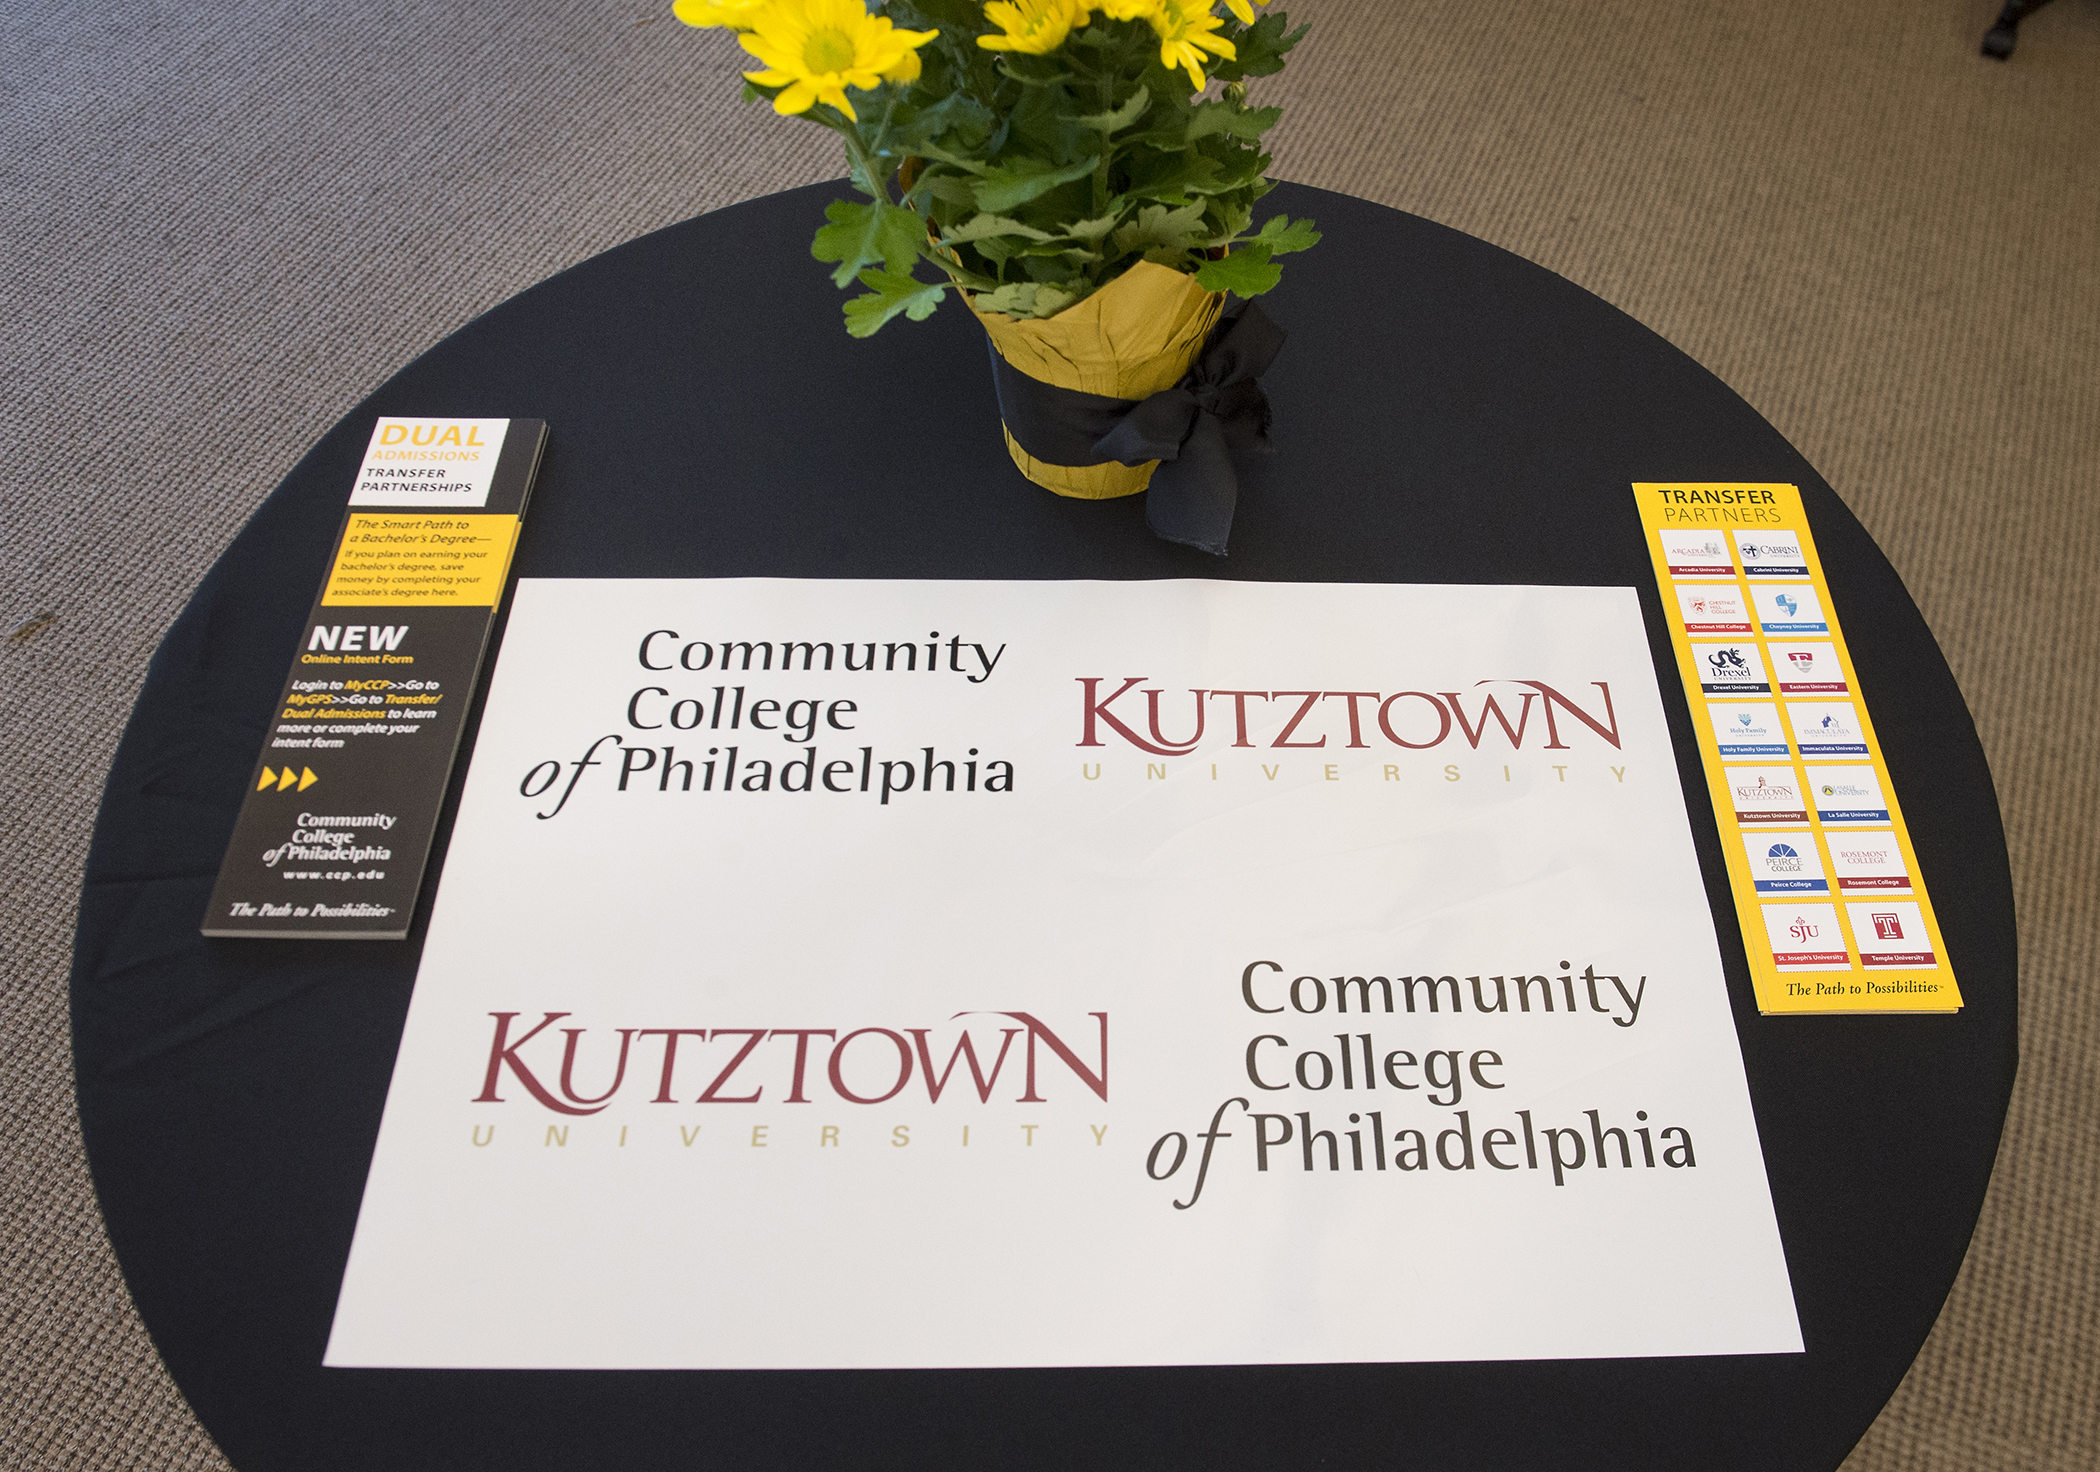 College admission essay service kutztown university